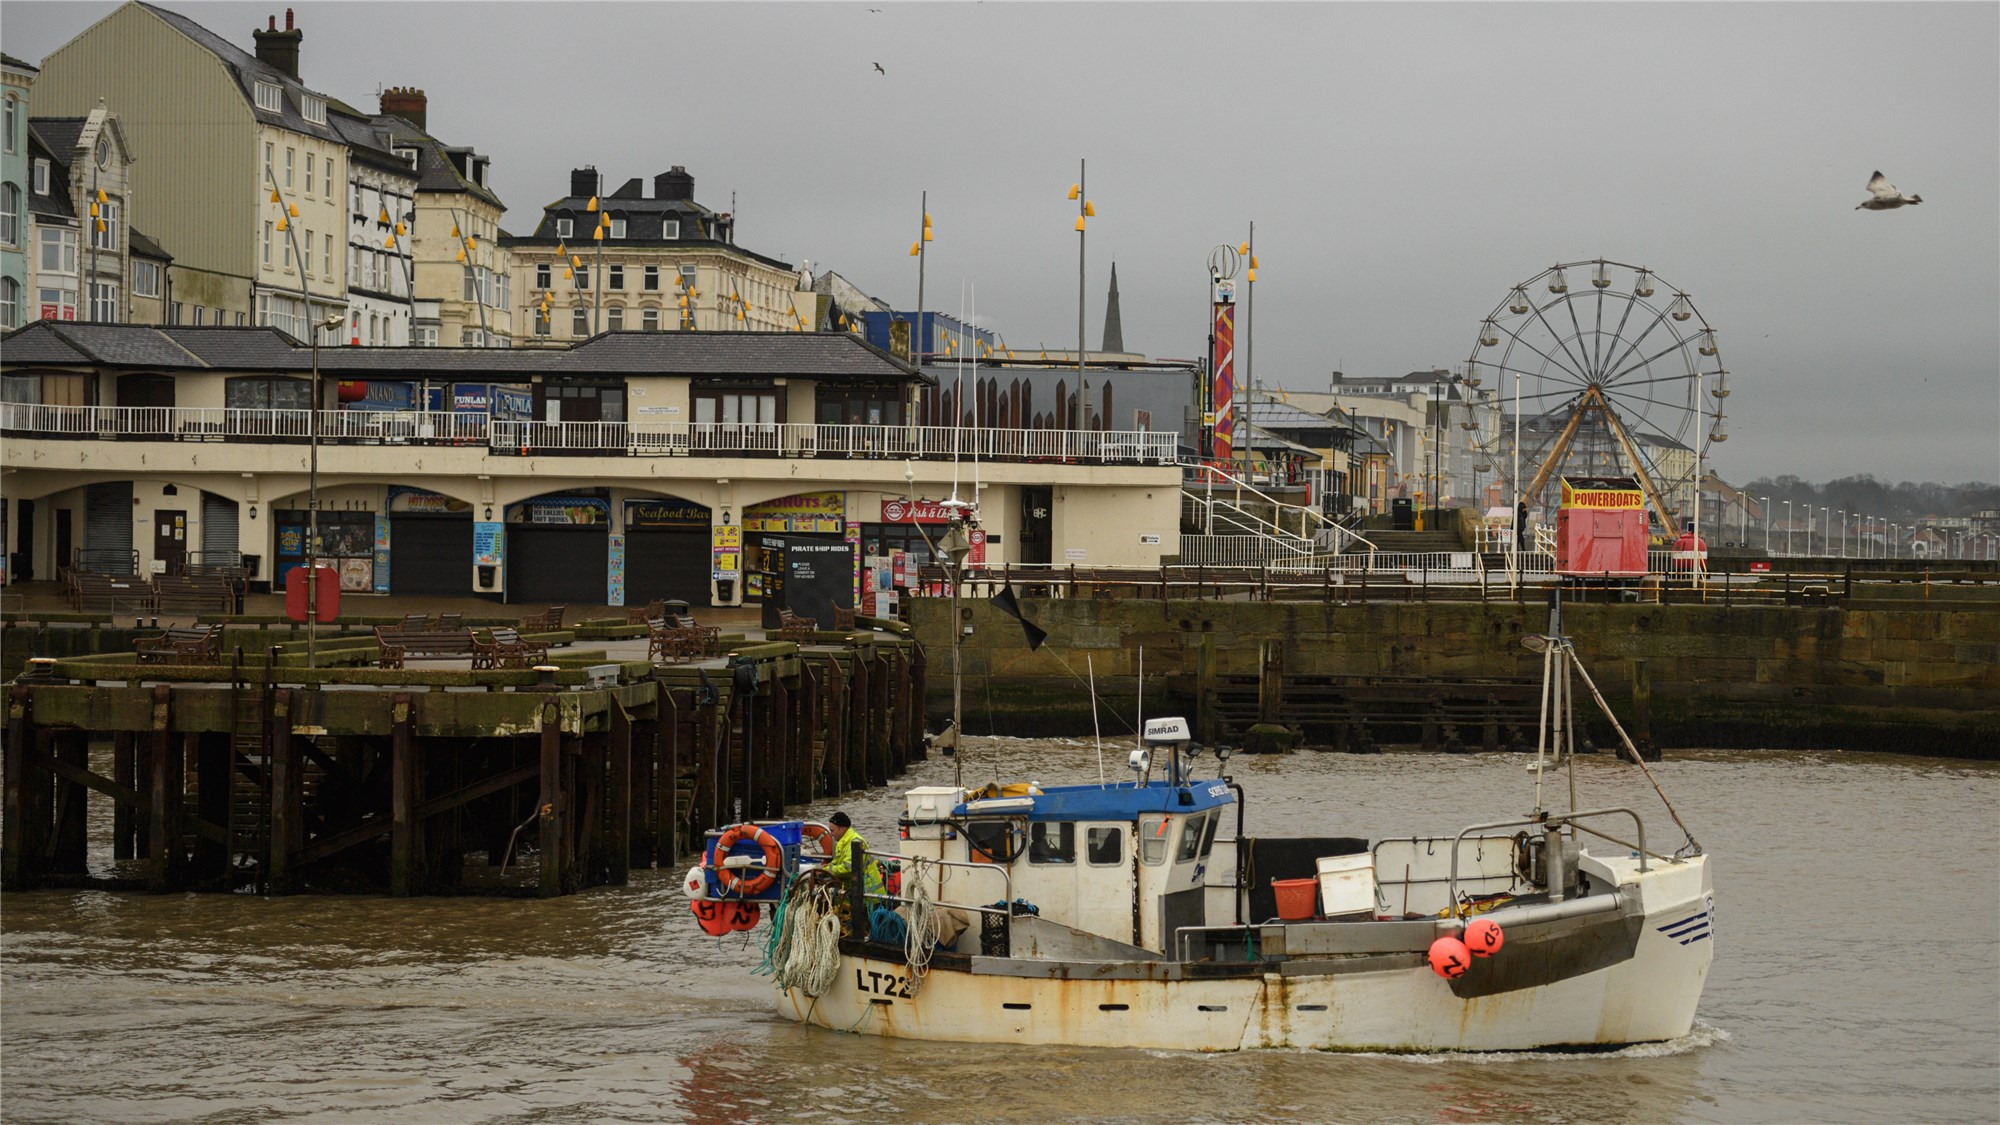 UK prepares Navy to protect fishing waters in case of 'no deal' Brexit